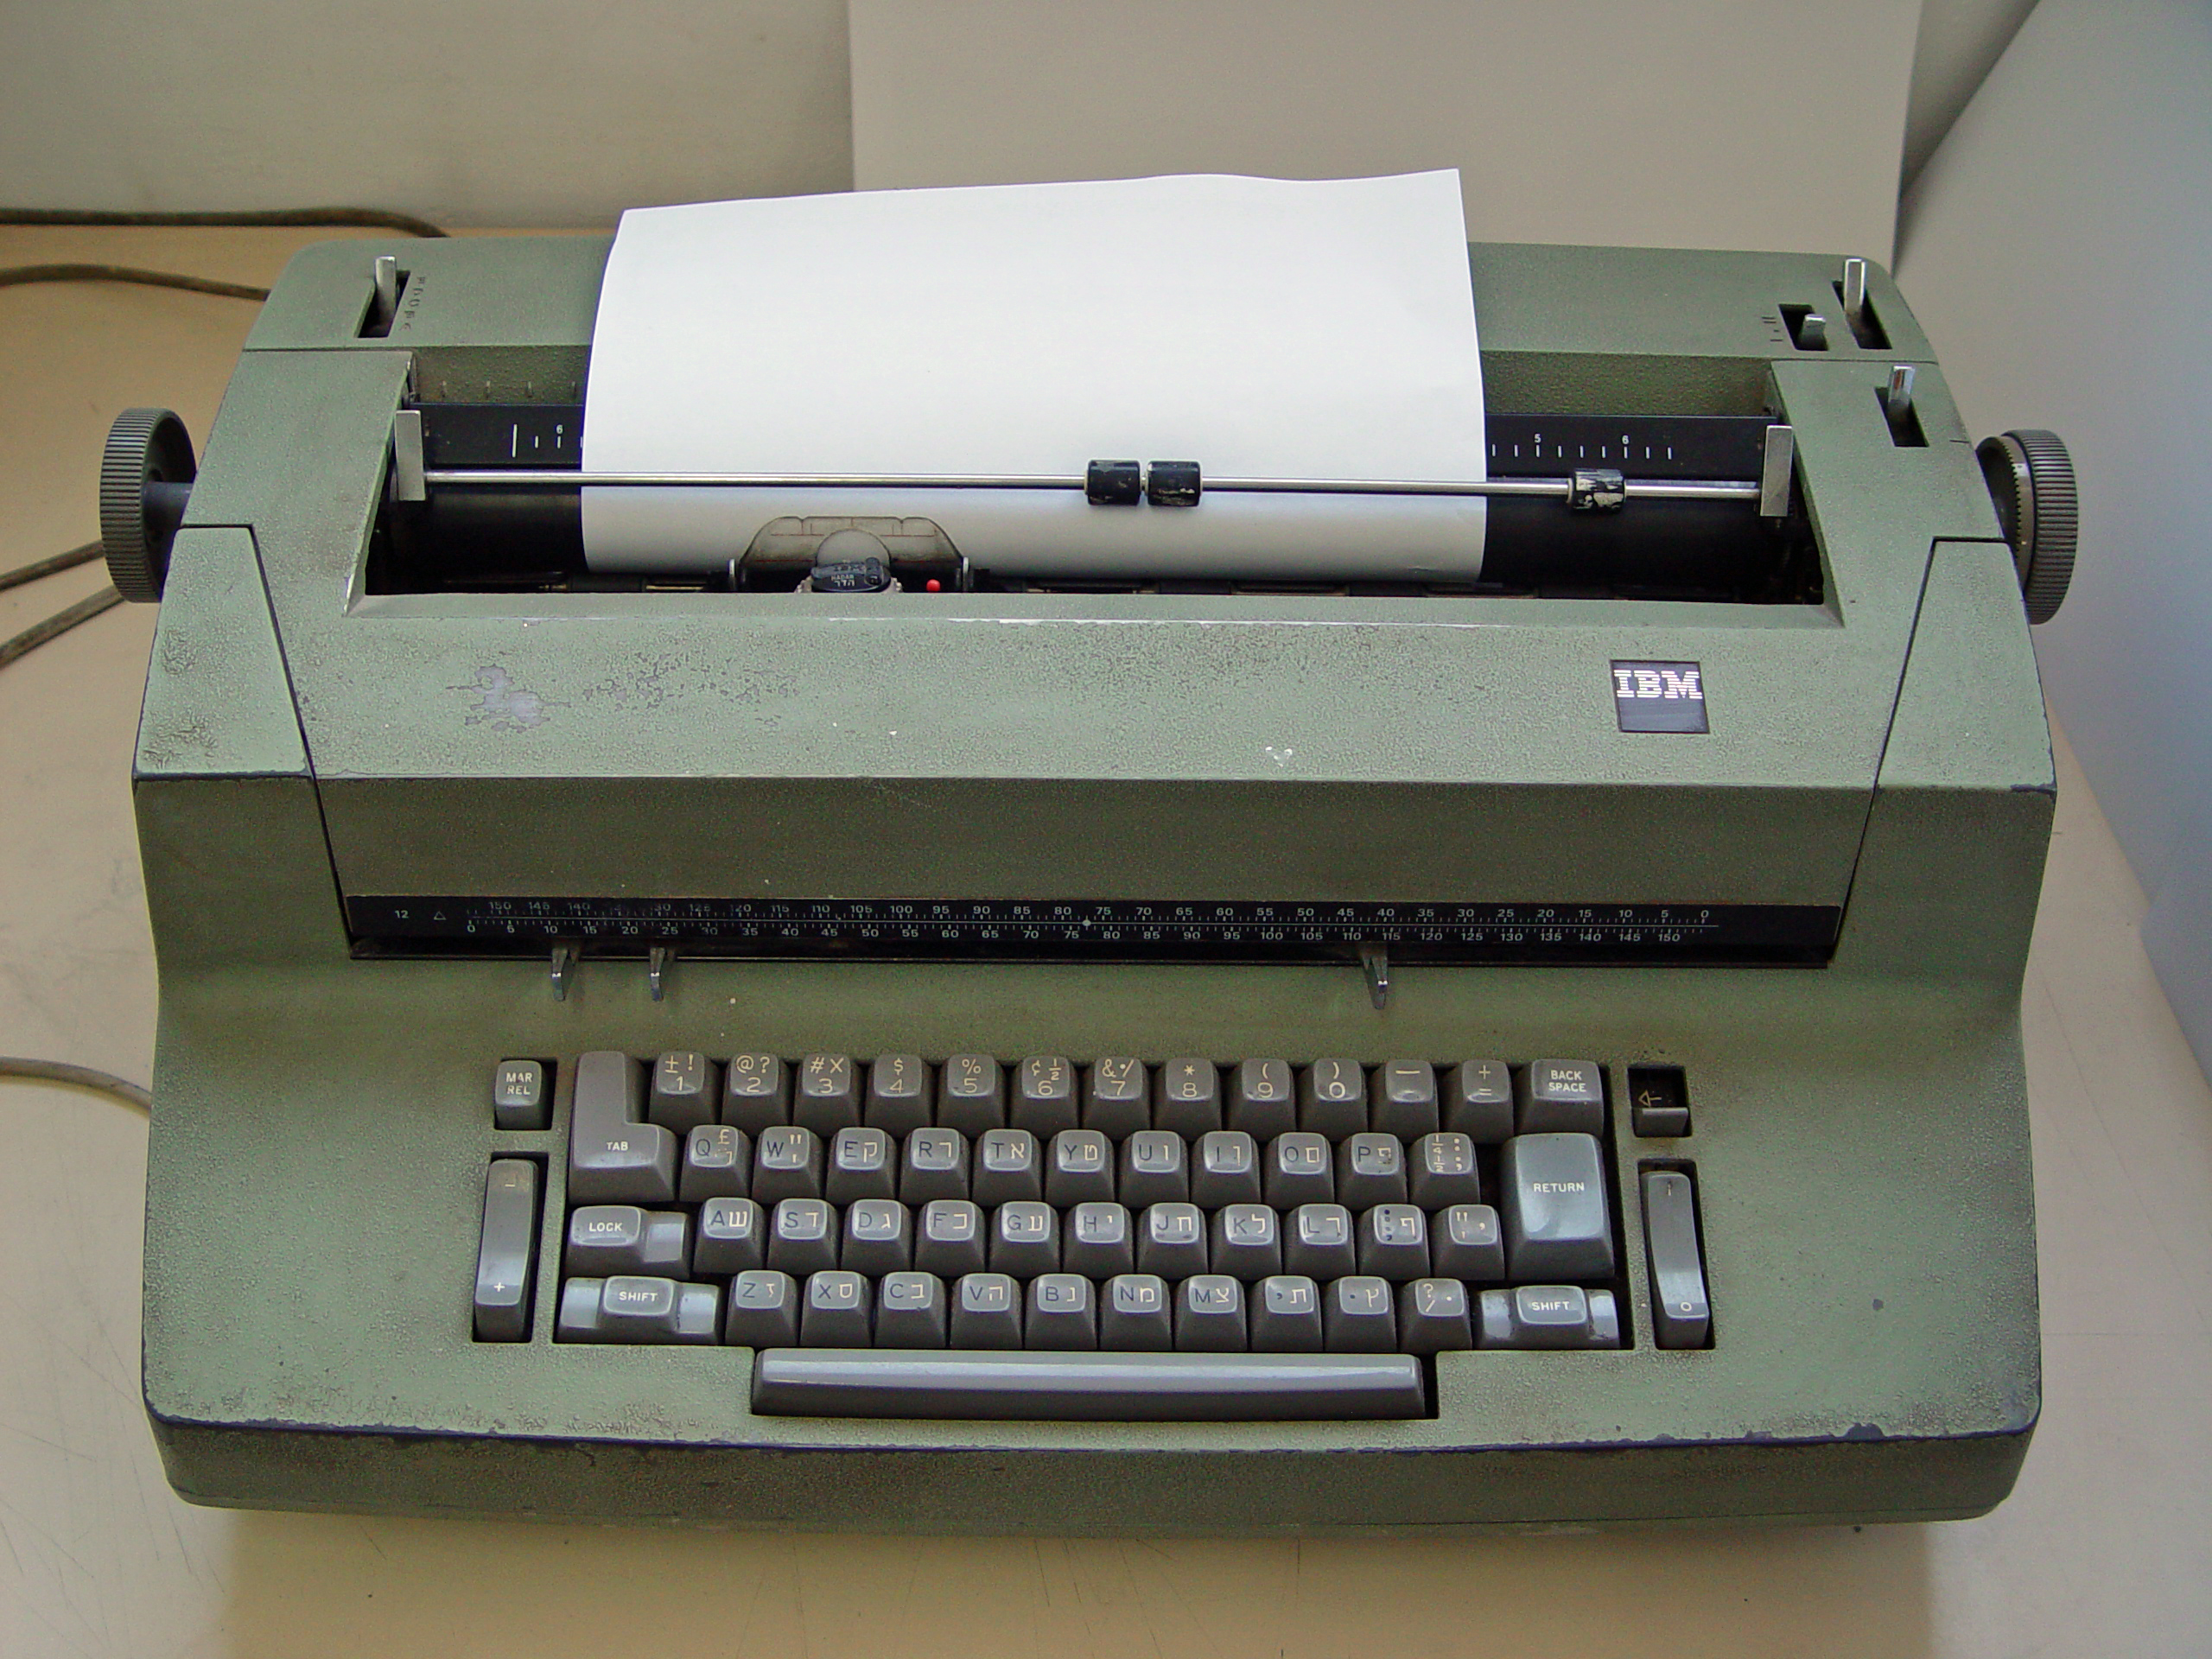 https://upload.wikimedia.org/wikipedia/commons/9/91/Selectric_II.jpg